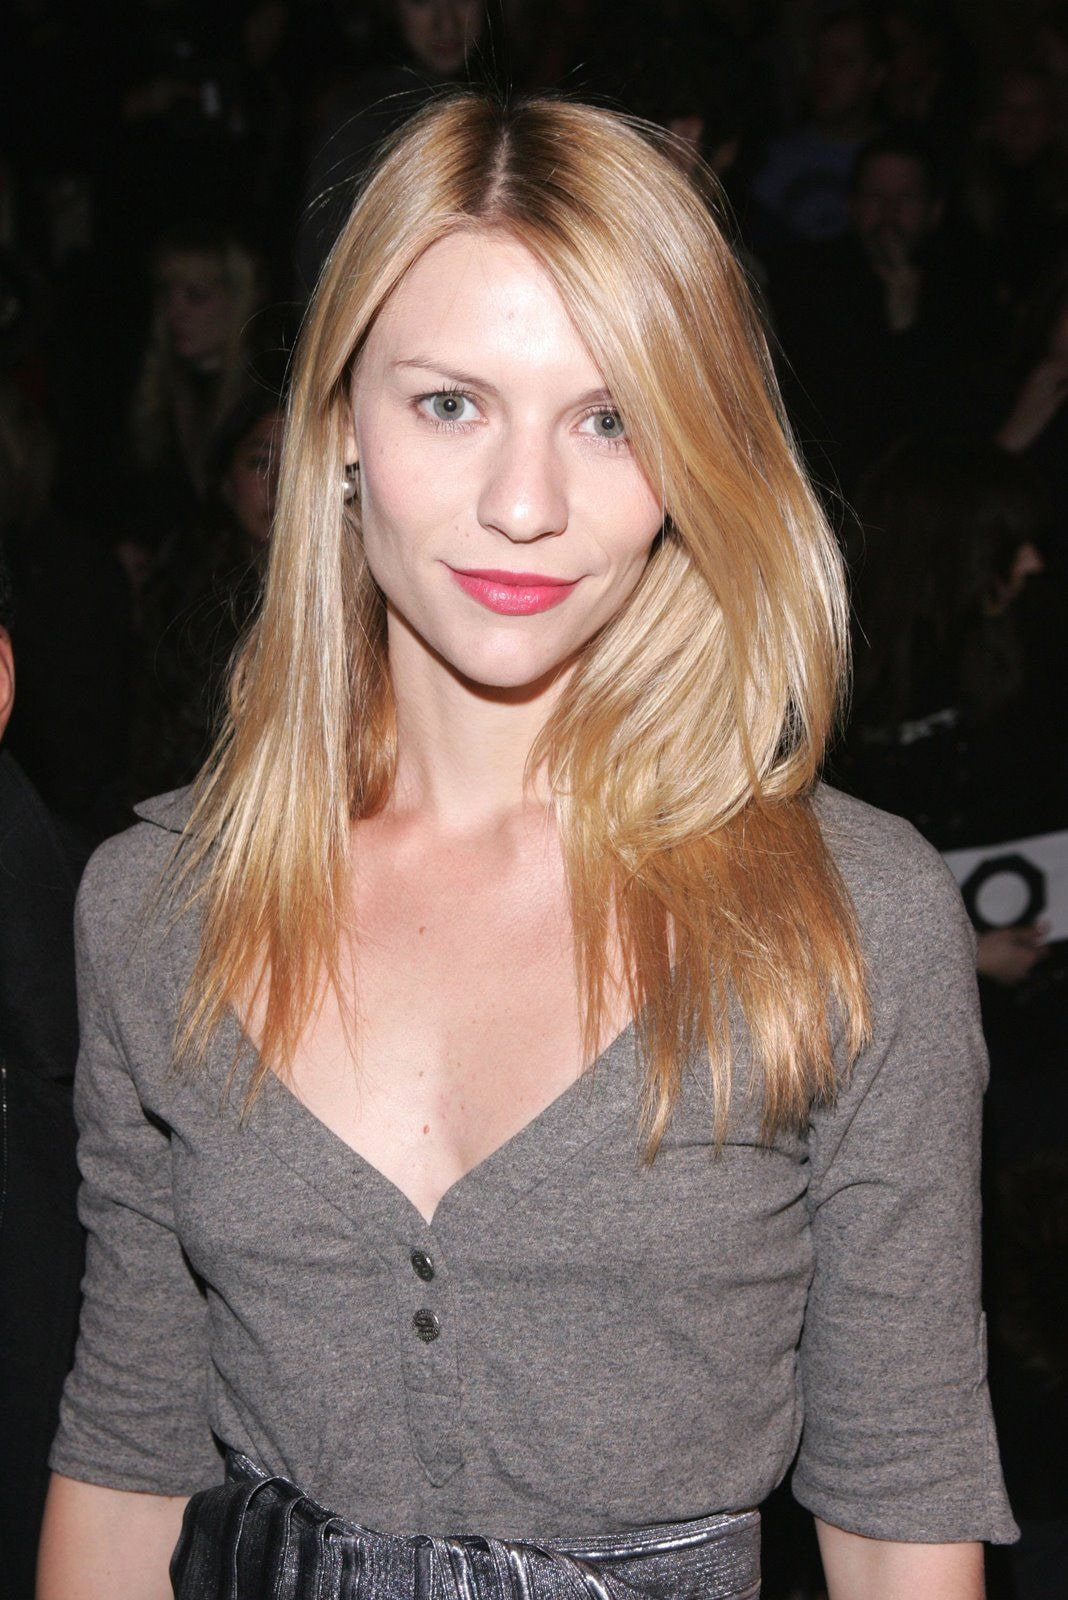 Cleavage Claire Danes naked (41 photo), Pussy, Sideboobs, Boobs, underwear 2020